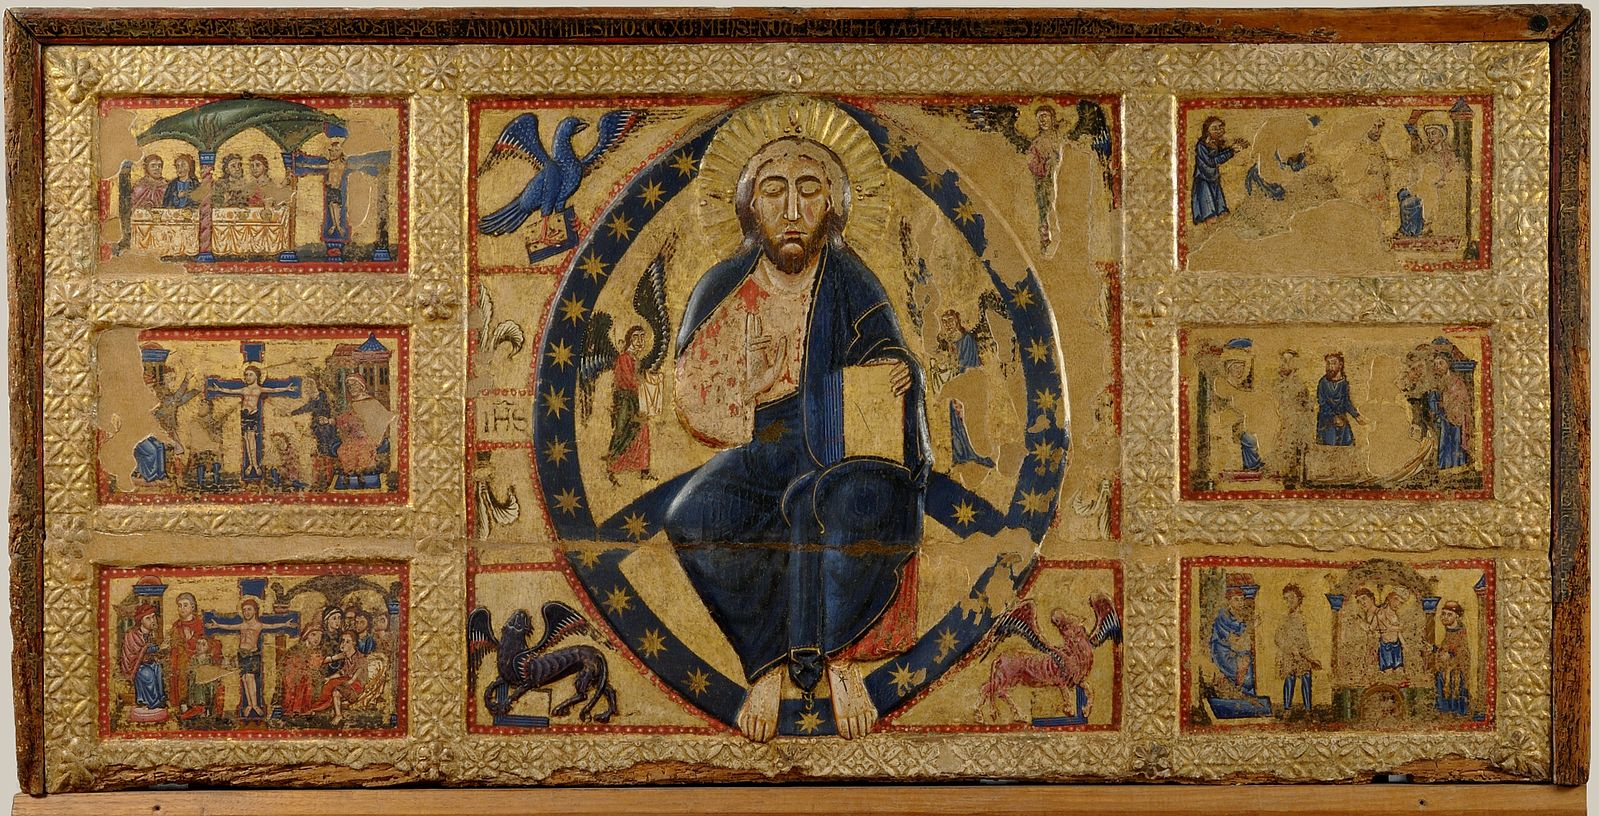 Master_of_Tressa_The_Saviour_Blessing_and_Stories_of_the_True_Cross_1215_Siena_Pinacoteca.